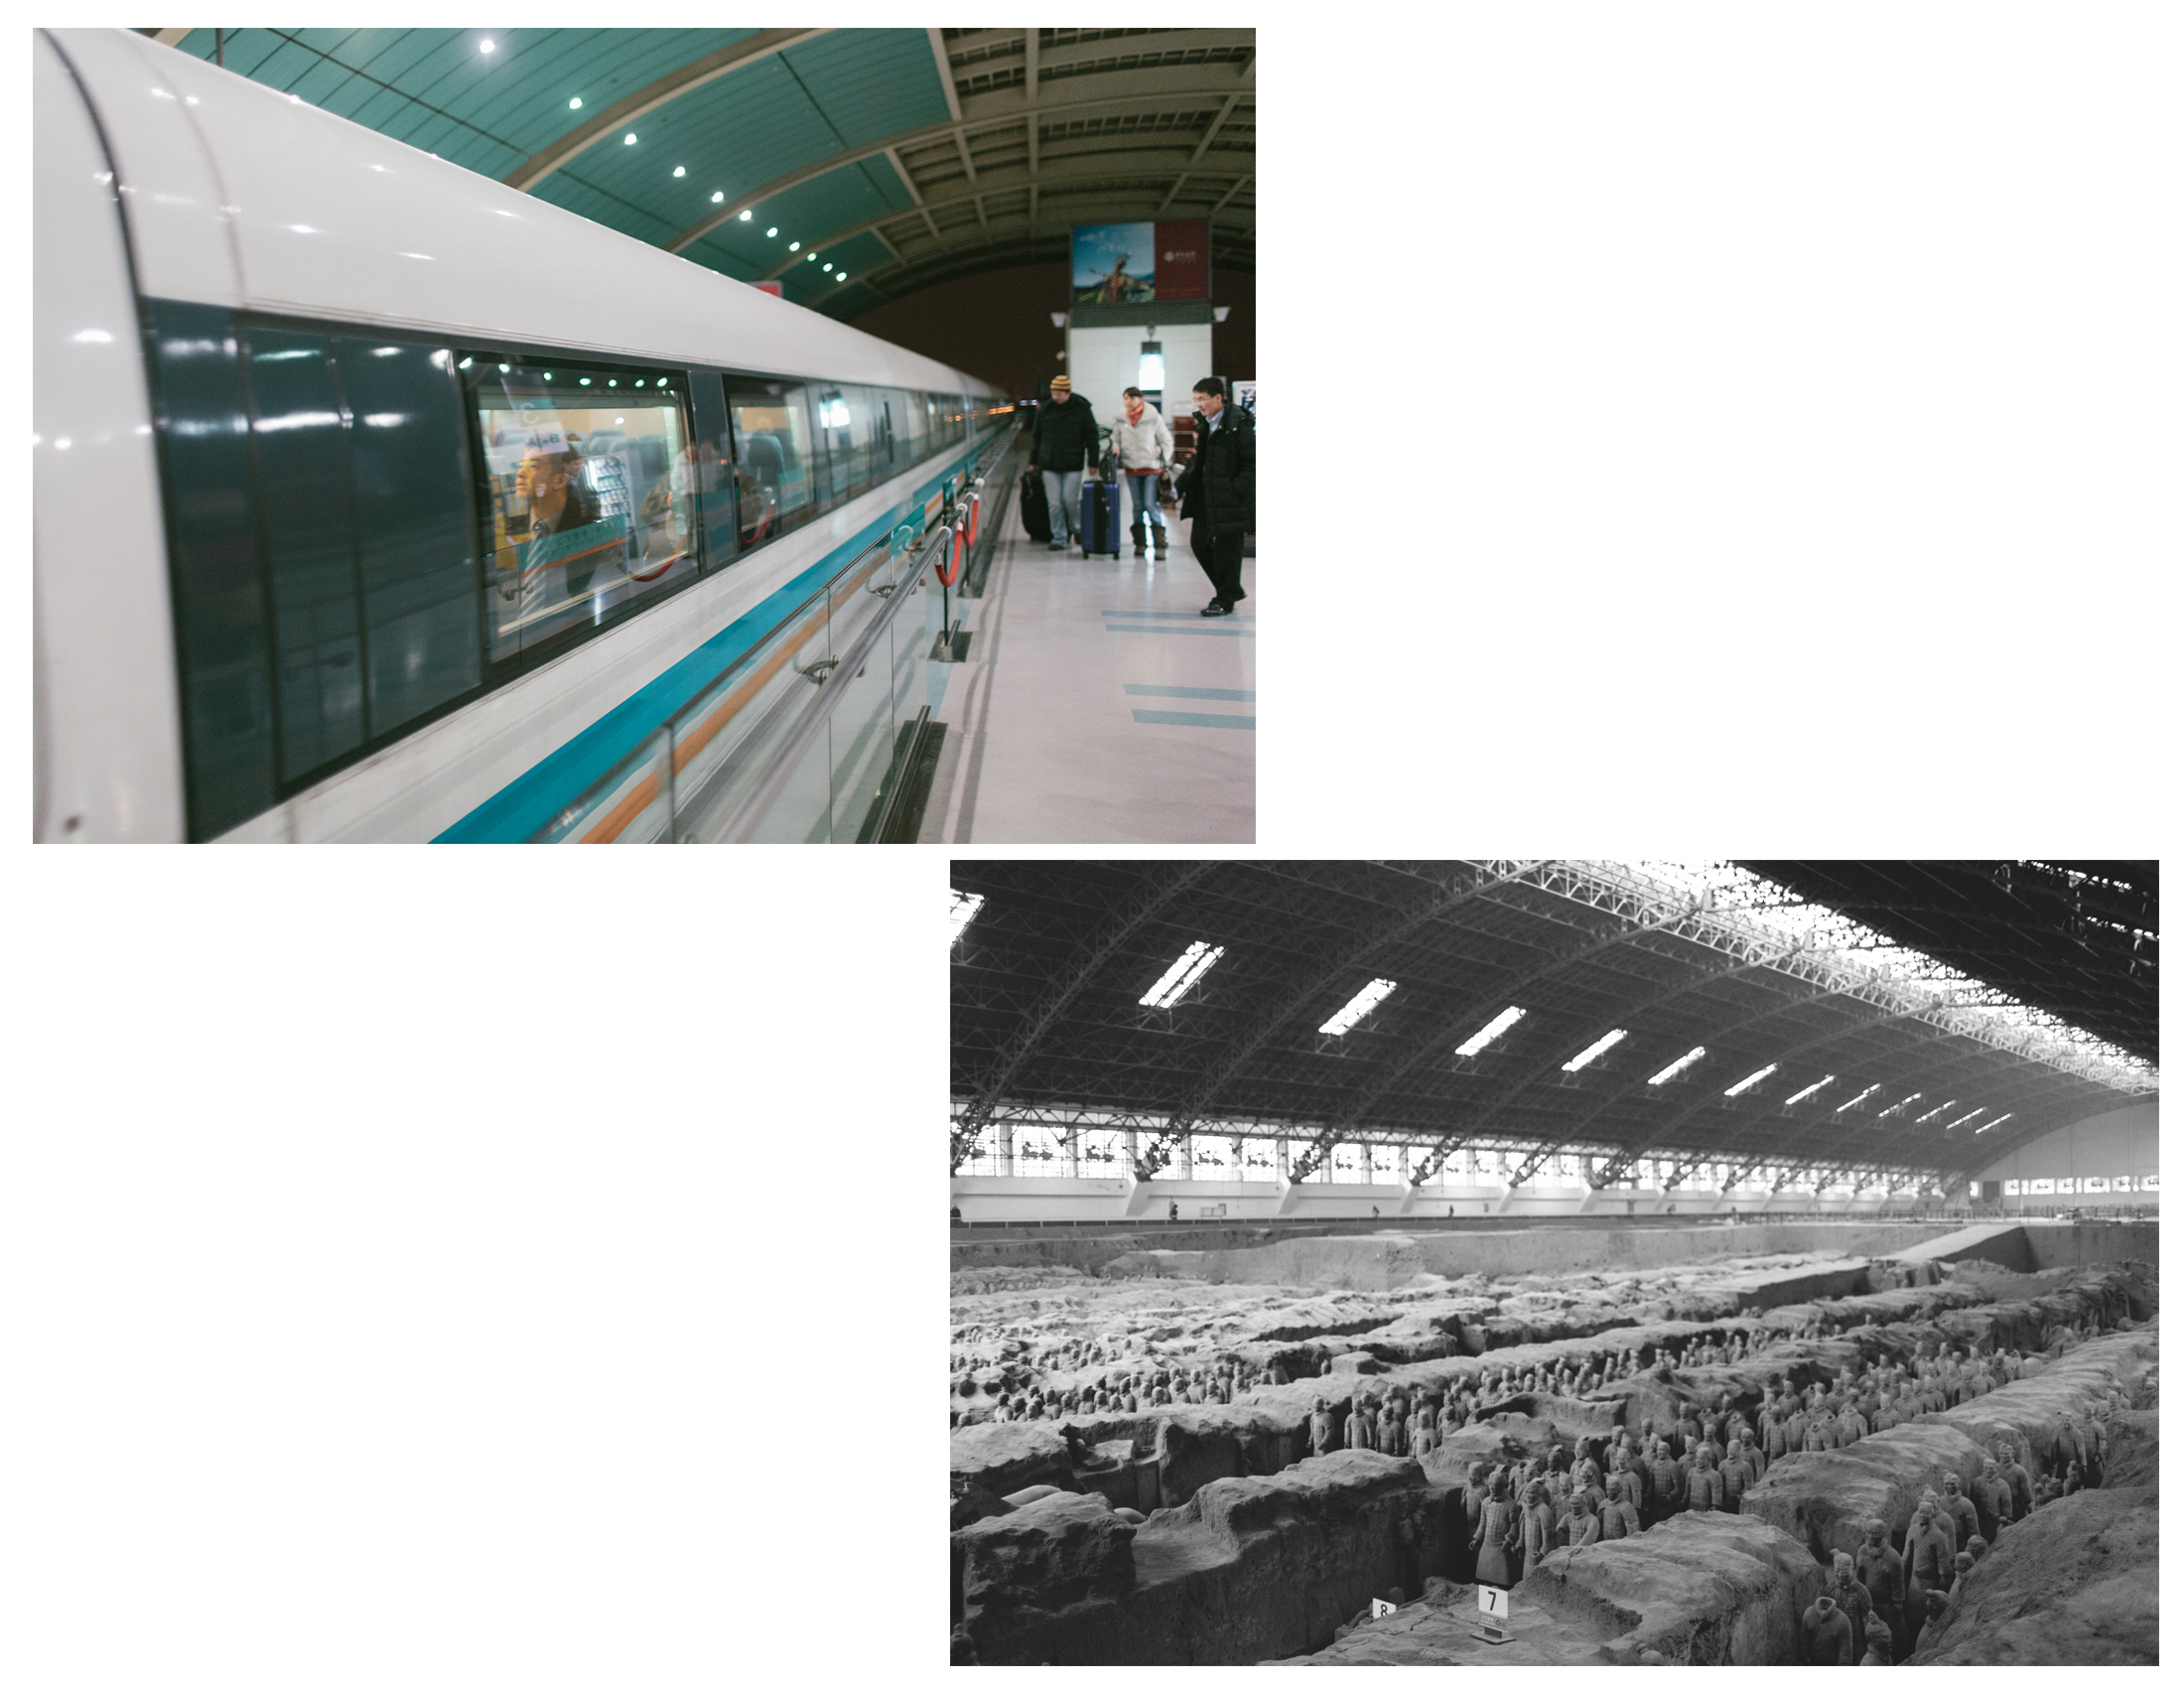 Two images centuries apart - The first one of the Maglev Train in Shanghai, the second of an active archeological dig site in Xi'an China. . The juxtaposition of the ancient terracotta warriors and the fastest, modern commercial train in the world (traveling 603km/h) side by side with such similar composition was too perfect.    Two feats of human ingenuity linked centuries apart. The past and the future. Forward and back.